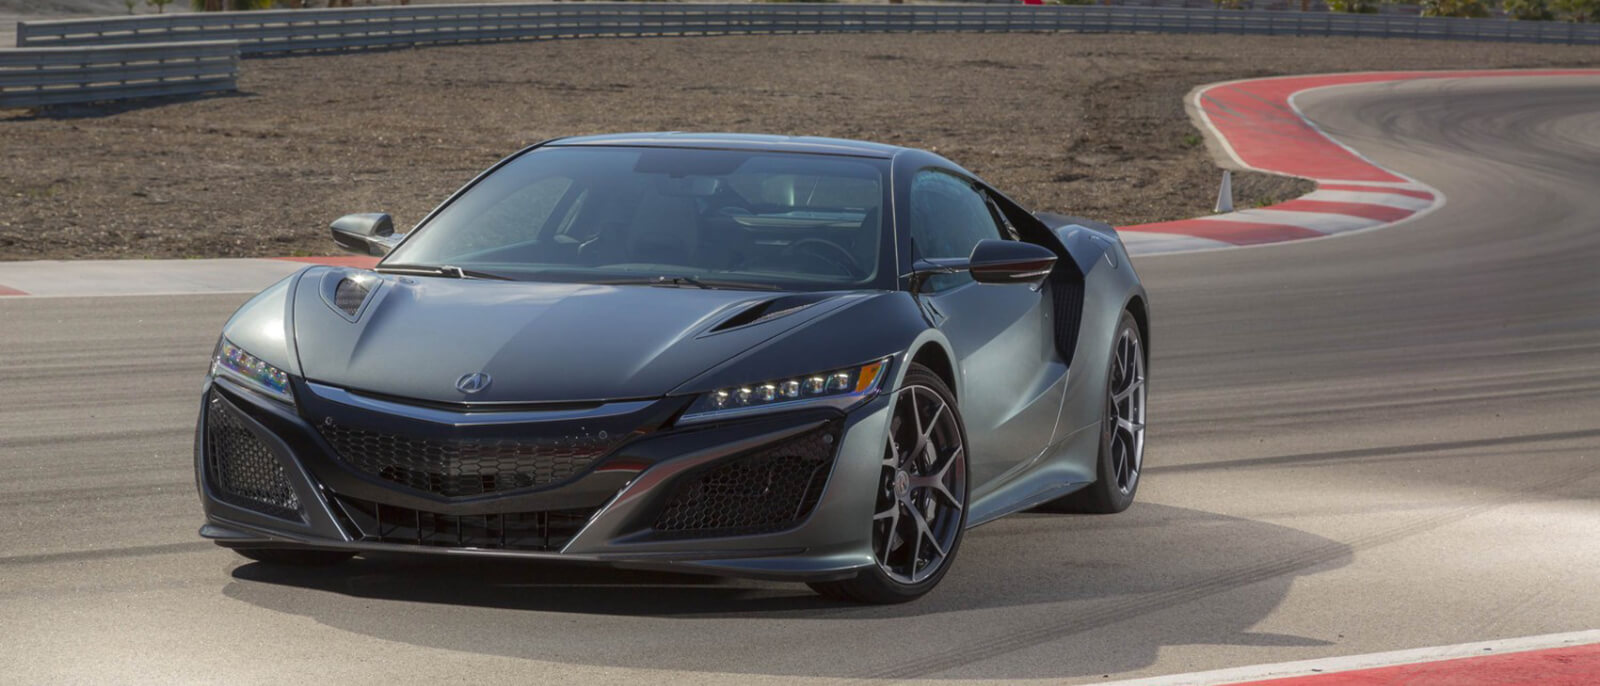 The debut of Acura NSX 2017 will be held in Los Angeles 99